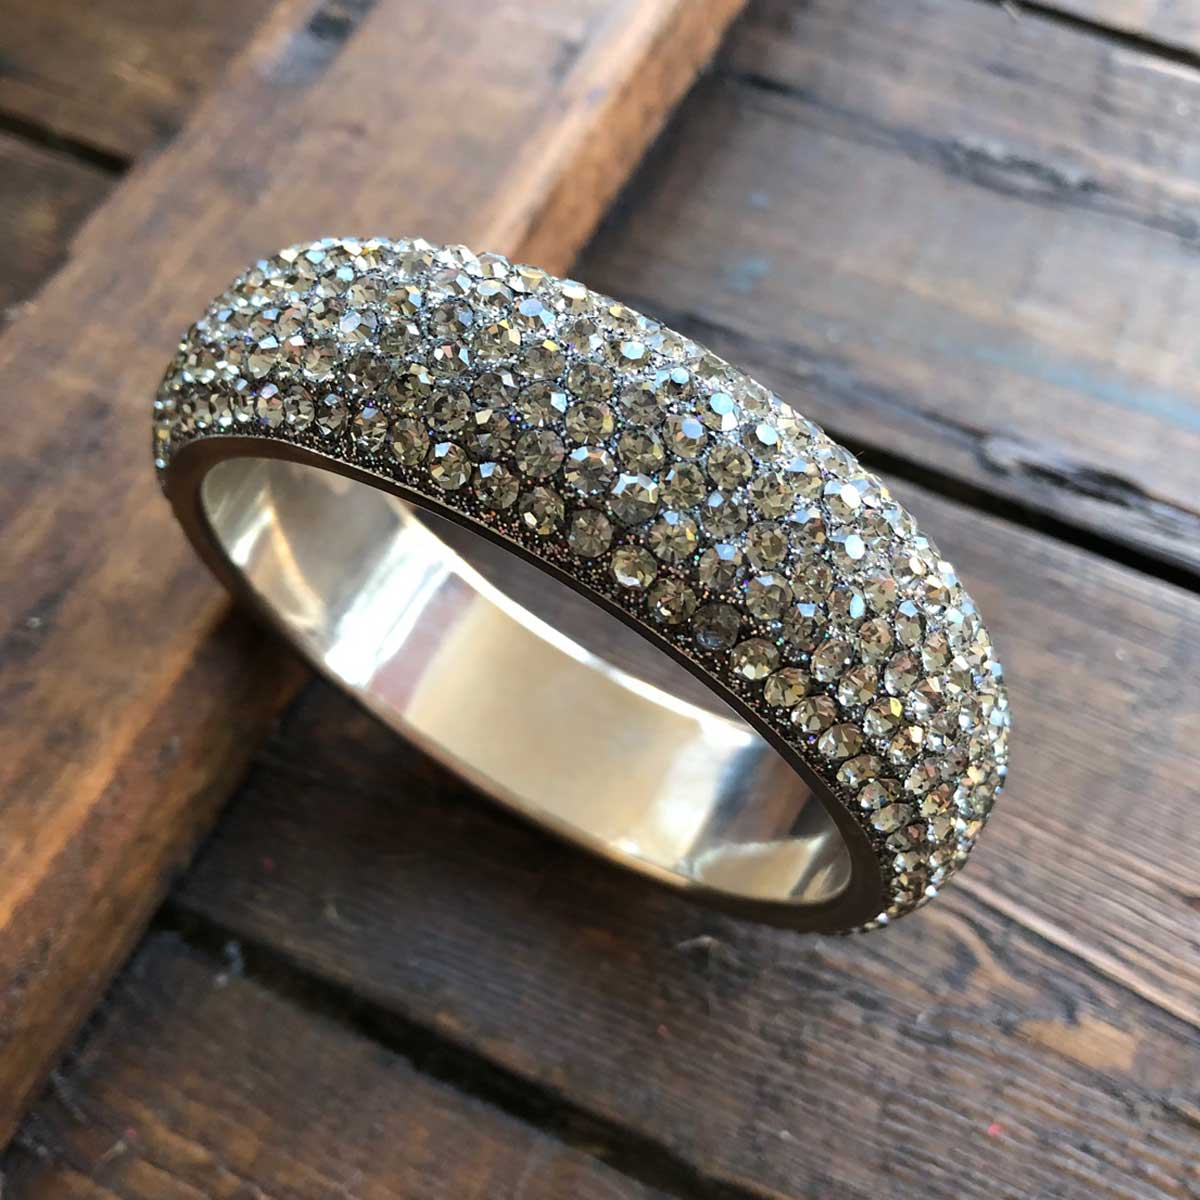 Sparkling Silver Crystal Bangle with 5 rows of Crystals